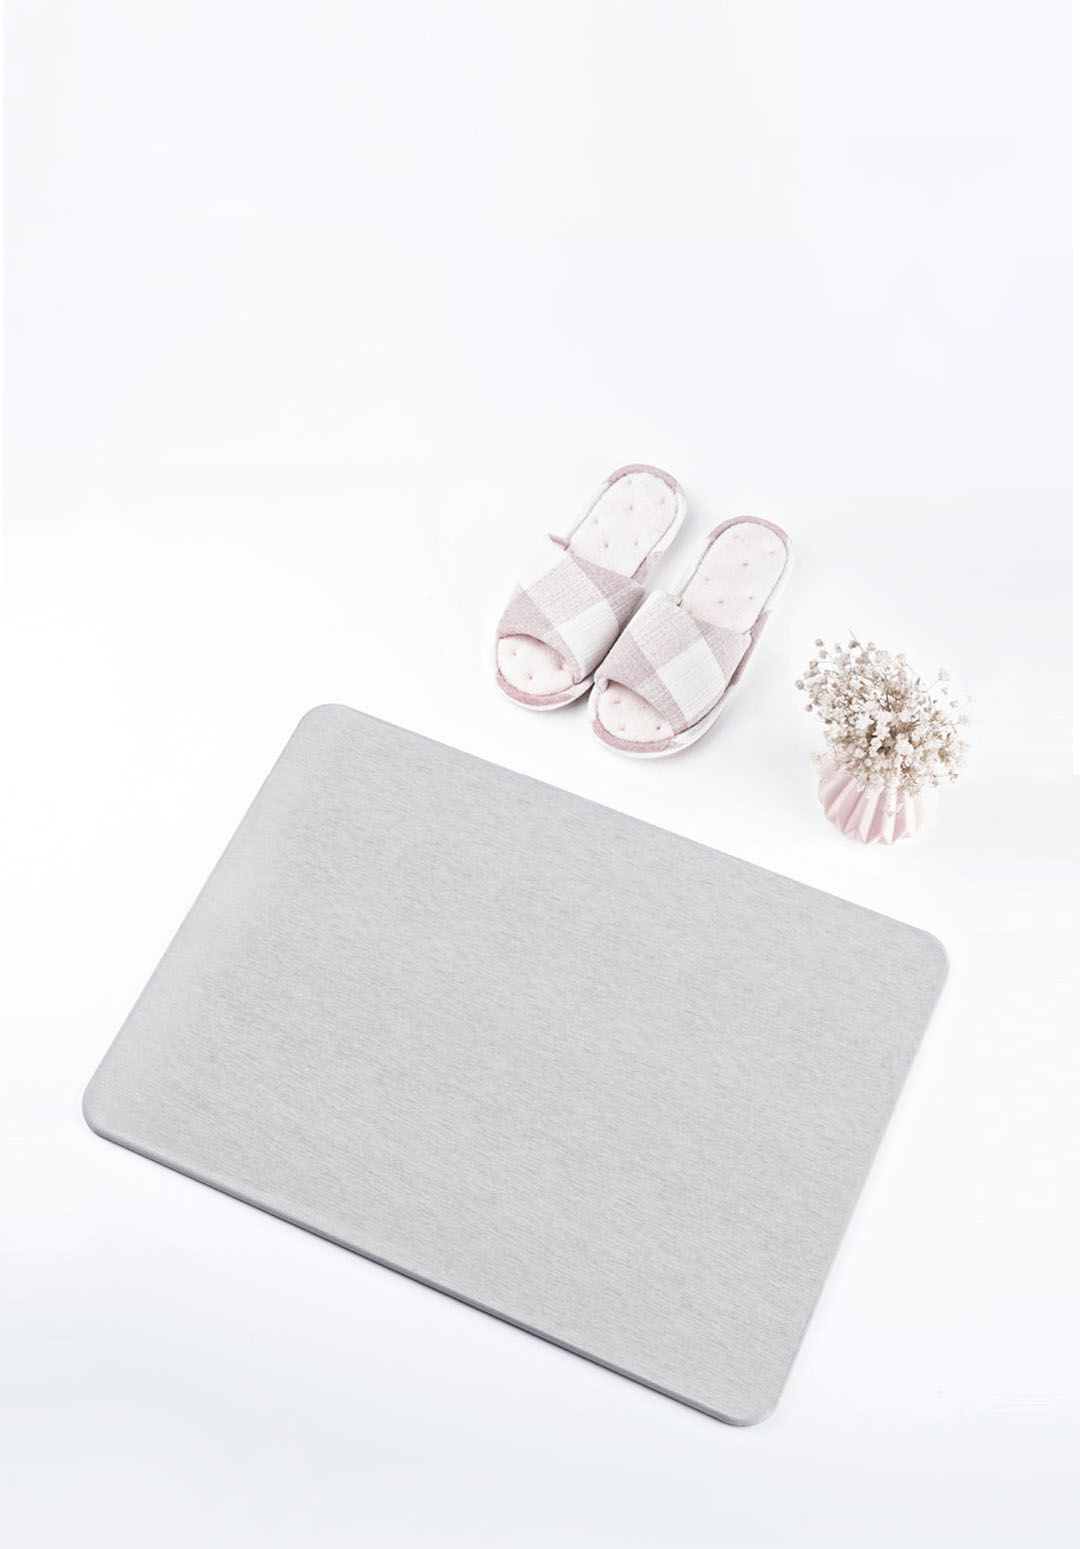 Xiaomi LIKESAME Diatomite Quick-drying Bathroom Mats Rectangular & Cloud Shape Rugs Quick-drying Water Easy to Clean Minimalist Design Carpet